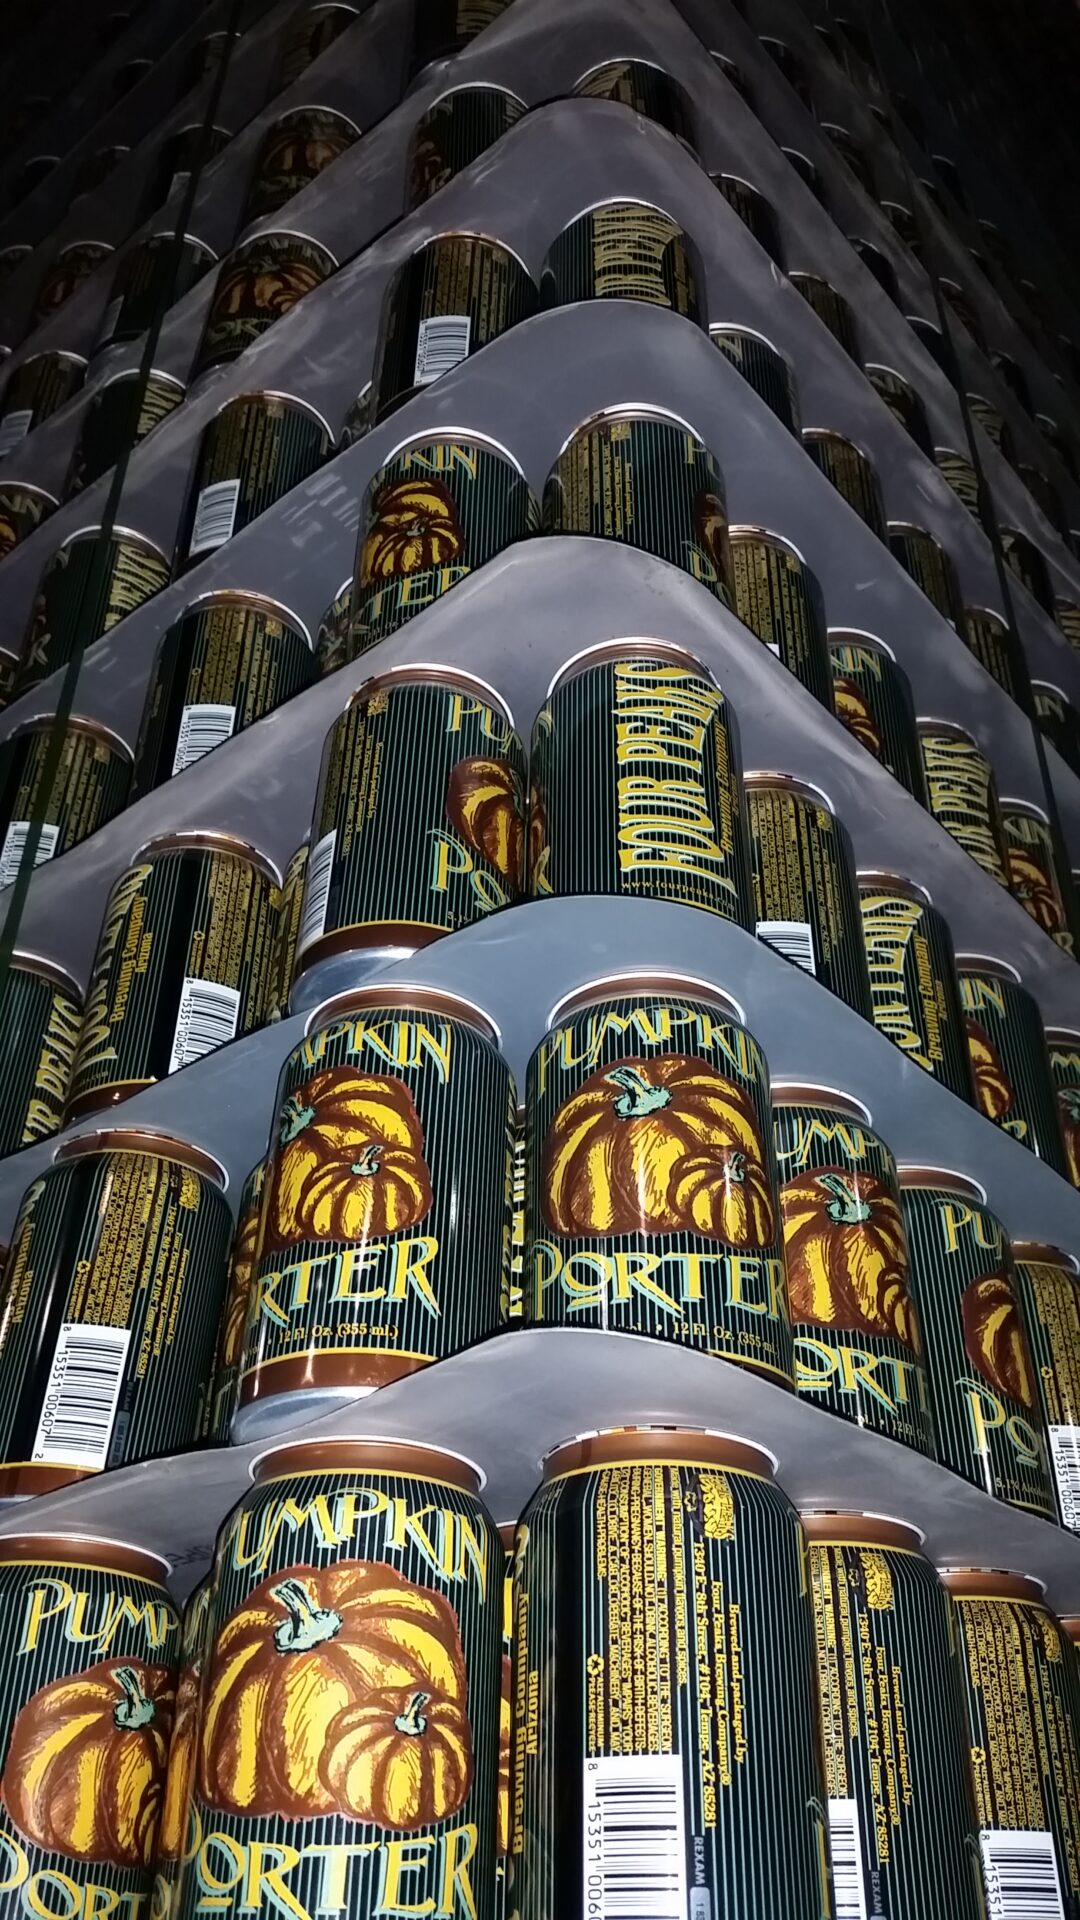 Tempe craft brewery sold to Anheuser-Busch